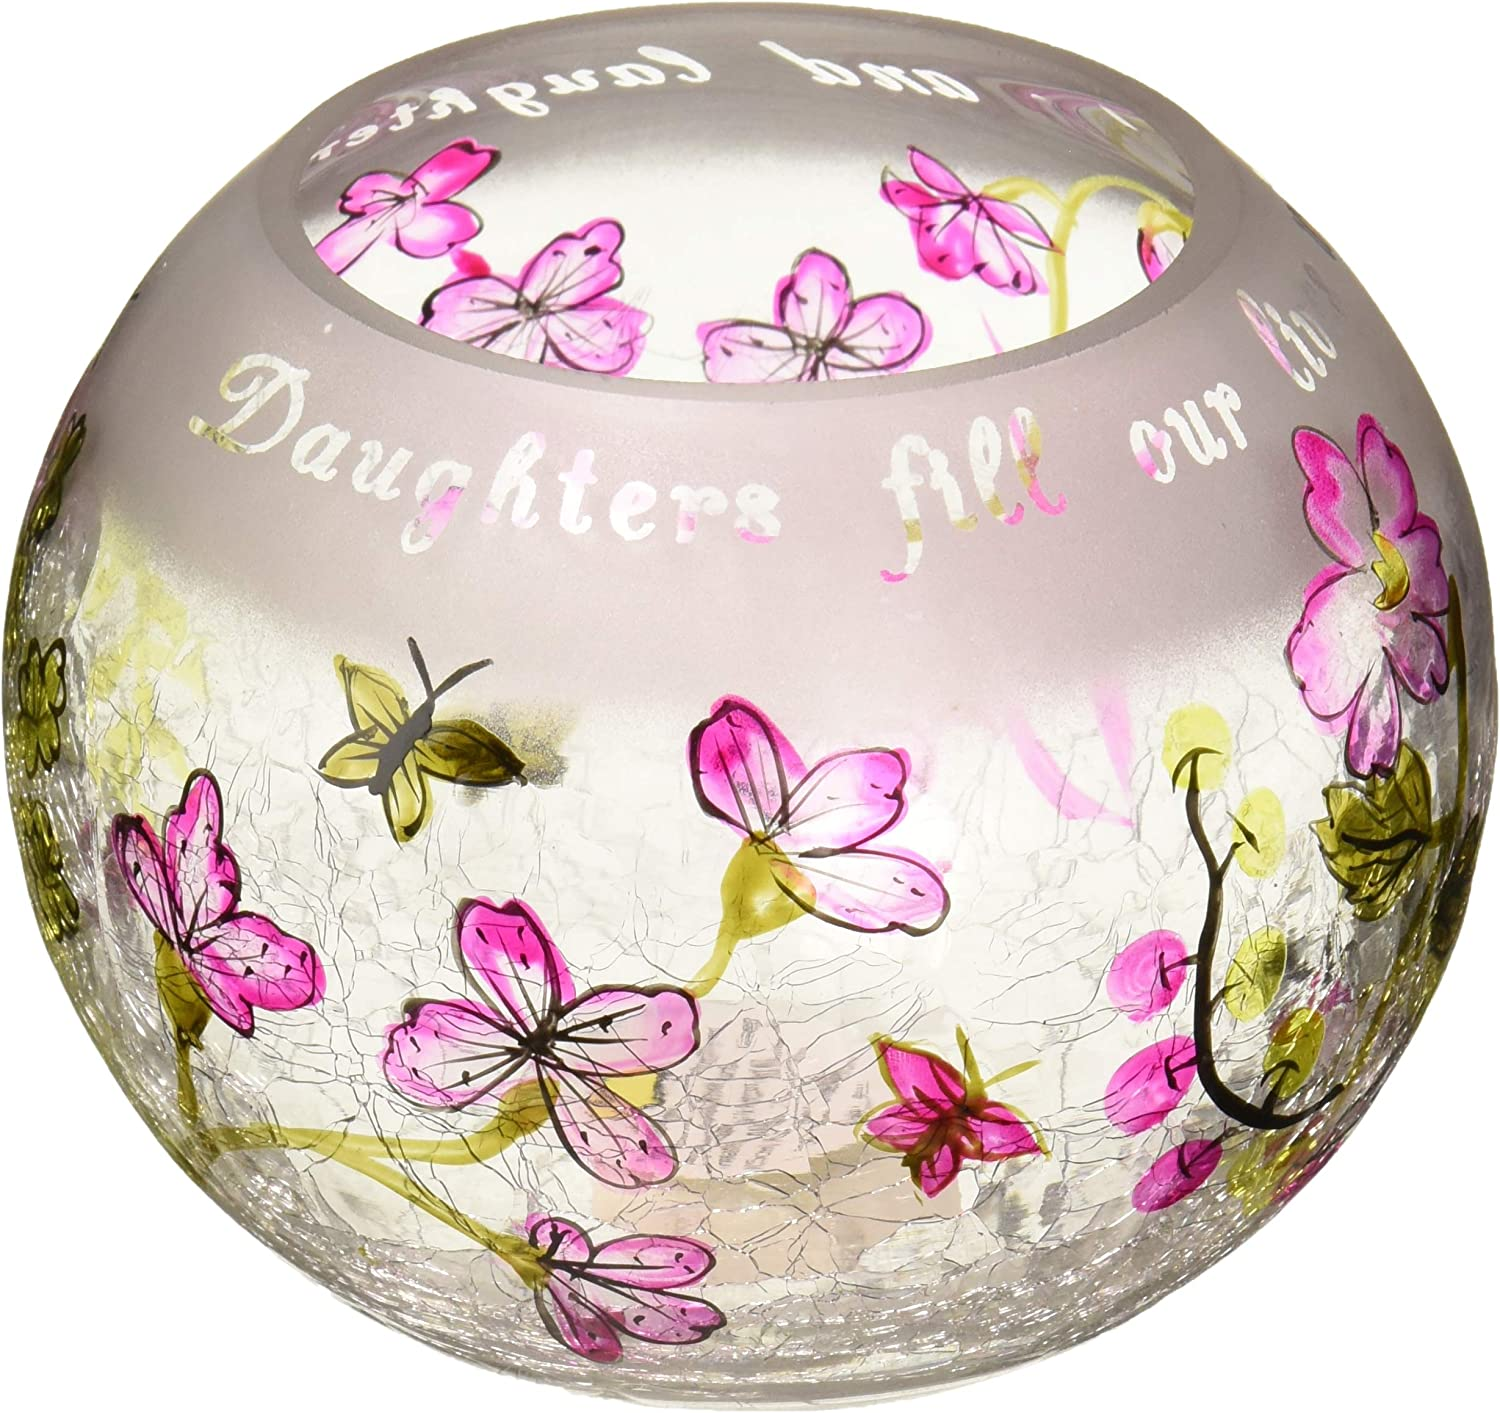 Pavilion Gift Company Mark My Words 5-Inch Round Hurricane Crackled Glass Candle Holder, Daughter Sentiment